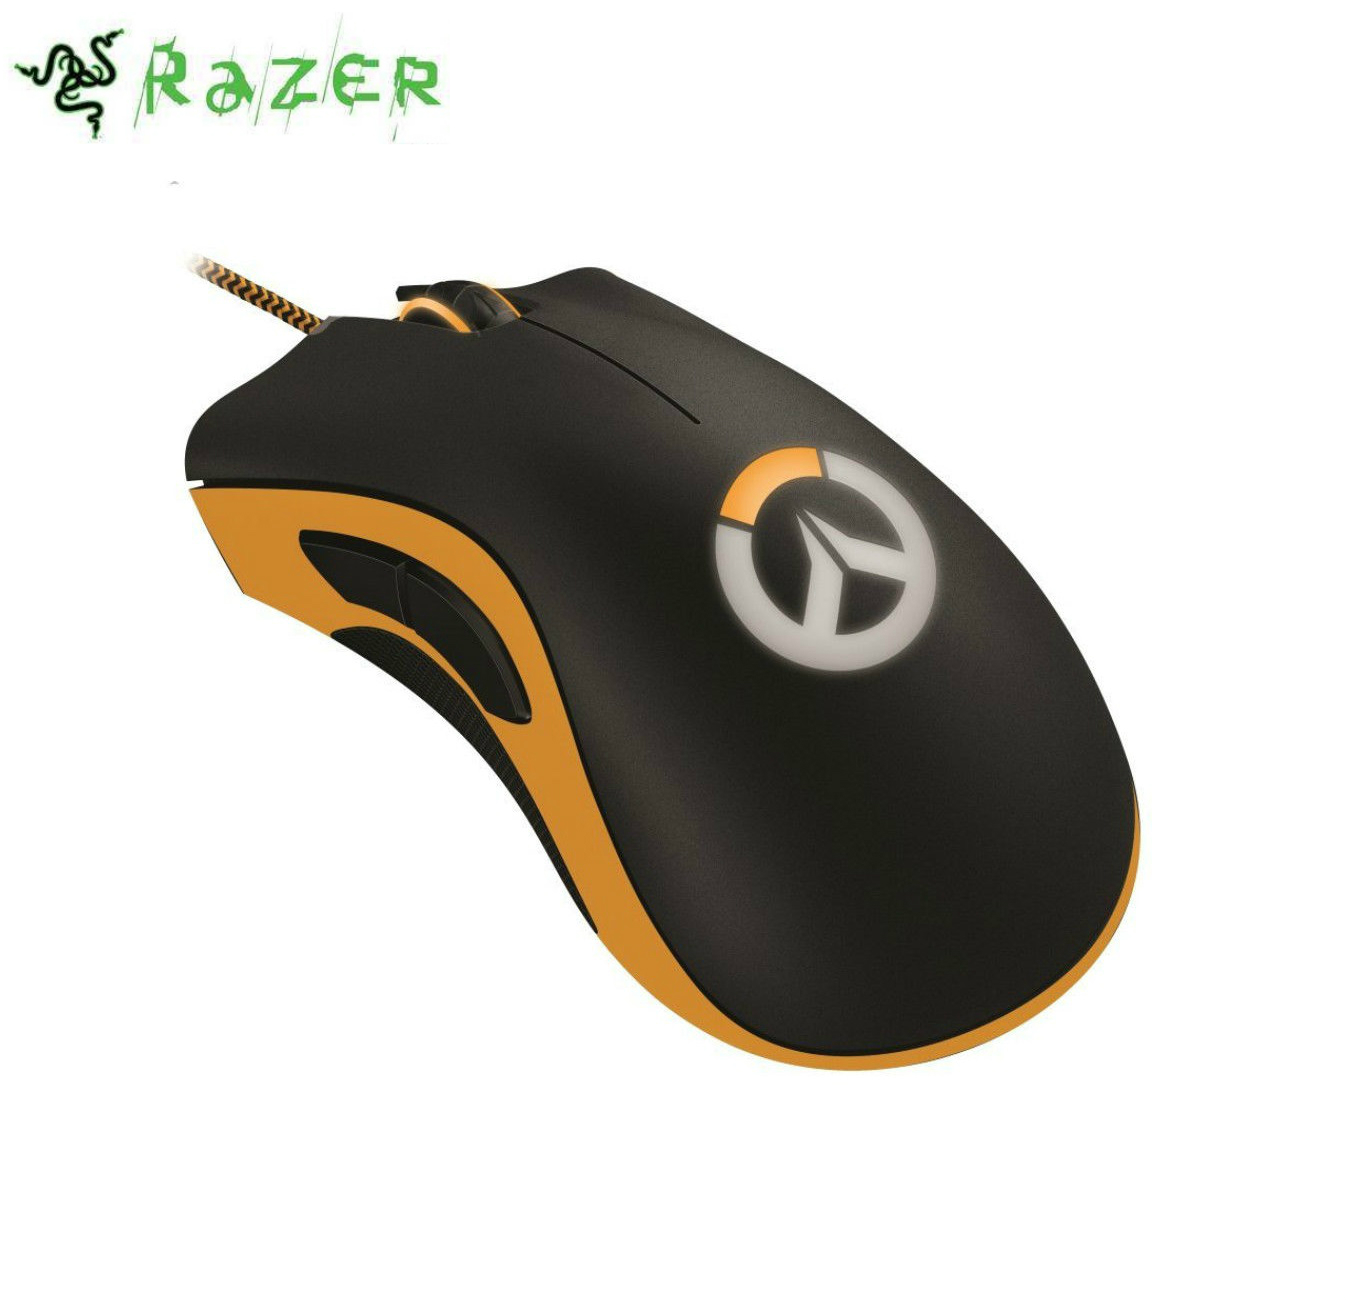 Razer DeathAdder Chroma Overwatch Edition Gaming Mouse 10000 DPI RGB Ergonomic PC Gamer USB Wired Retail Package image